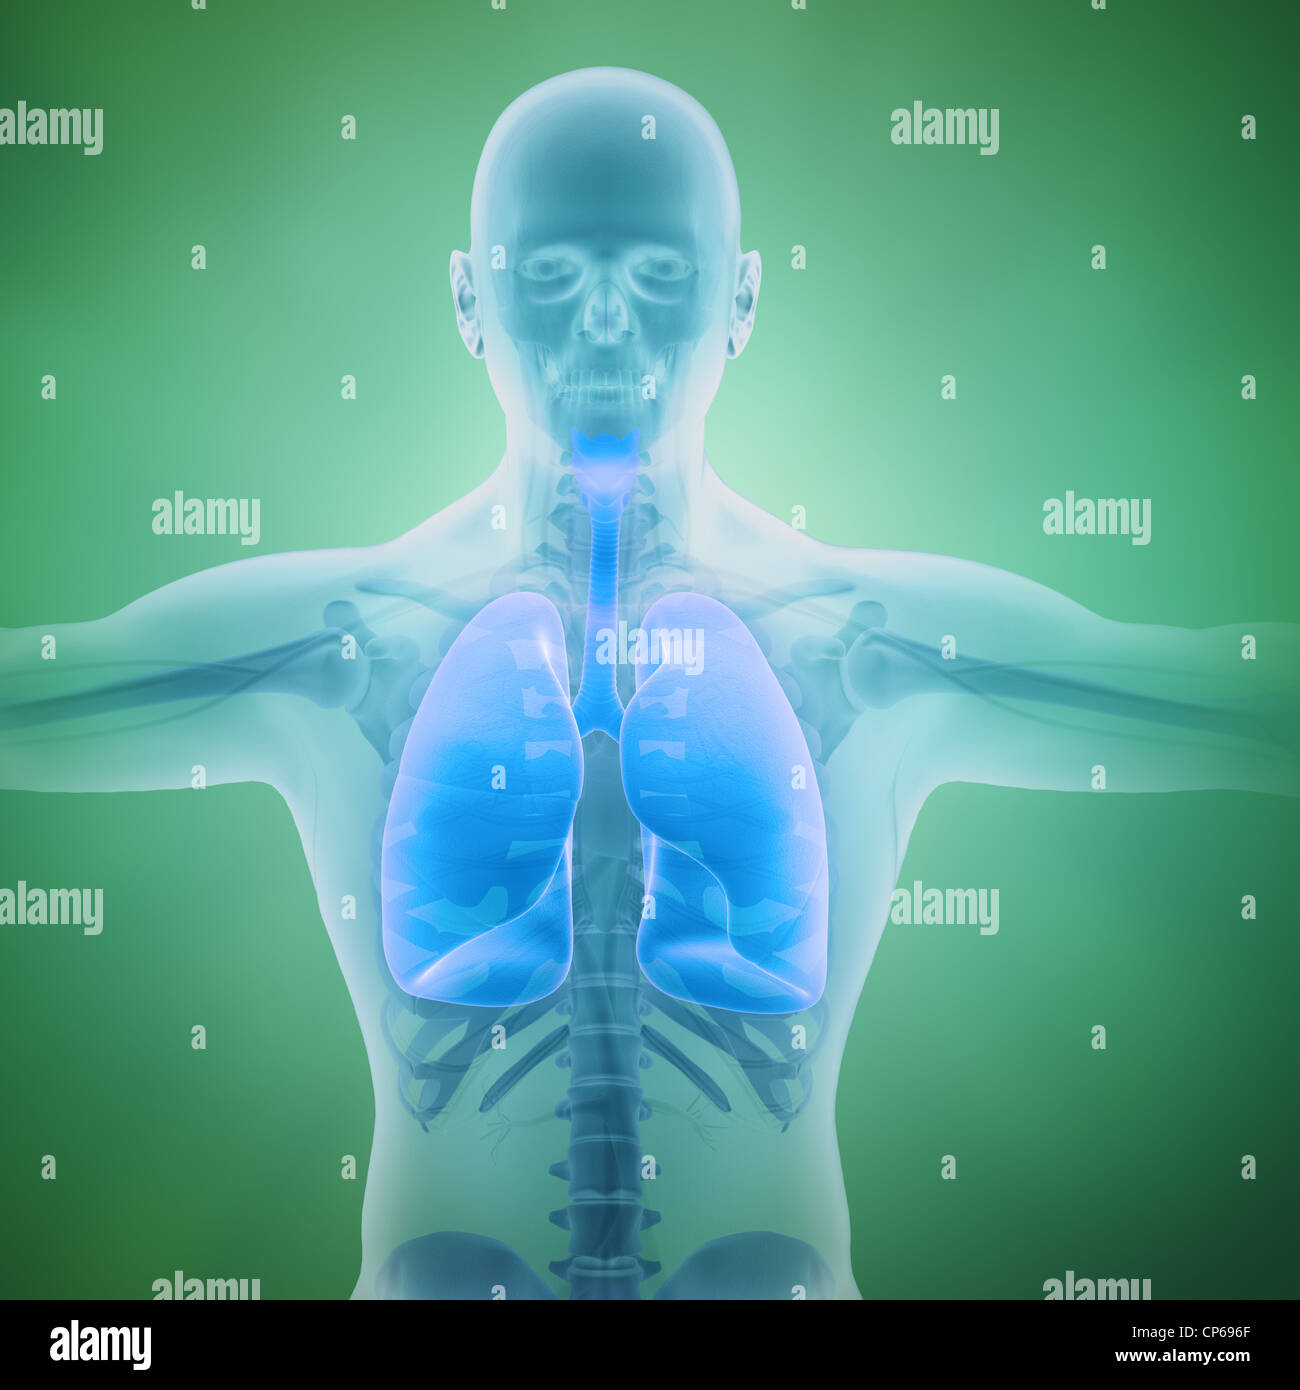 Respiratory system scientific illustration with visible lungs - Stock Image